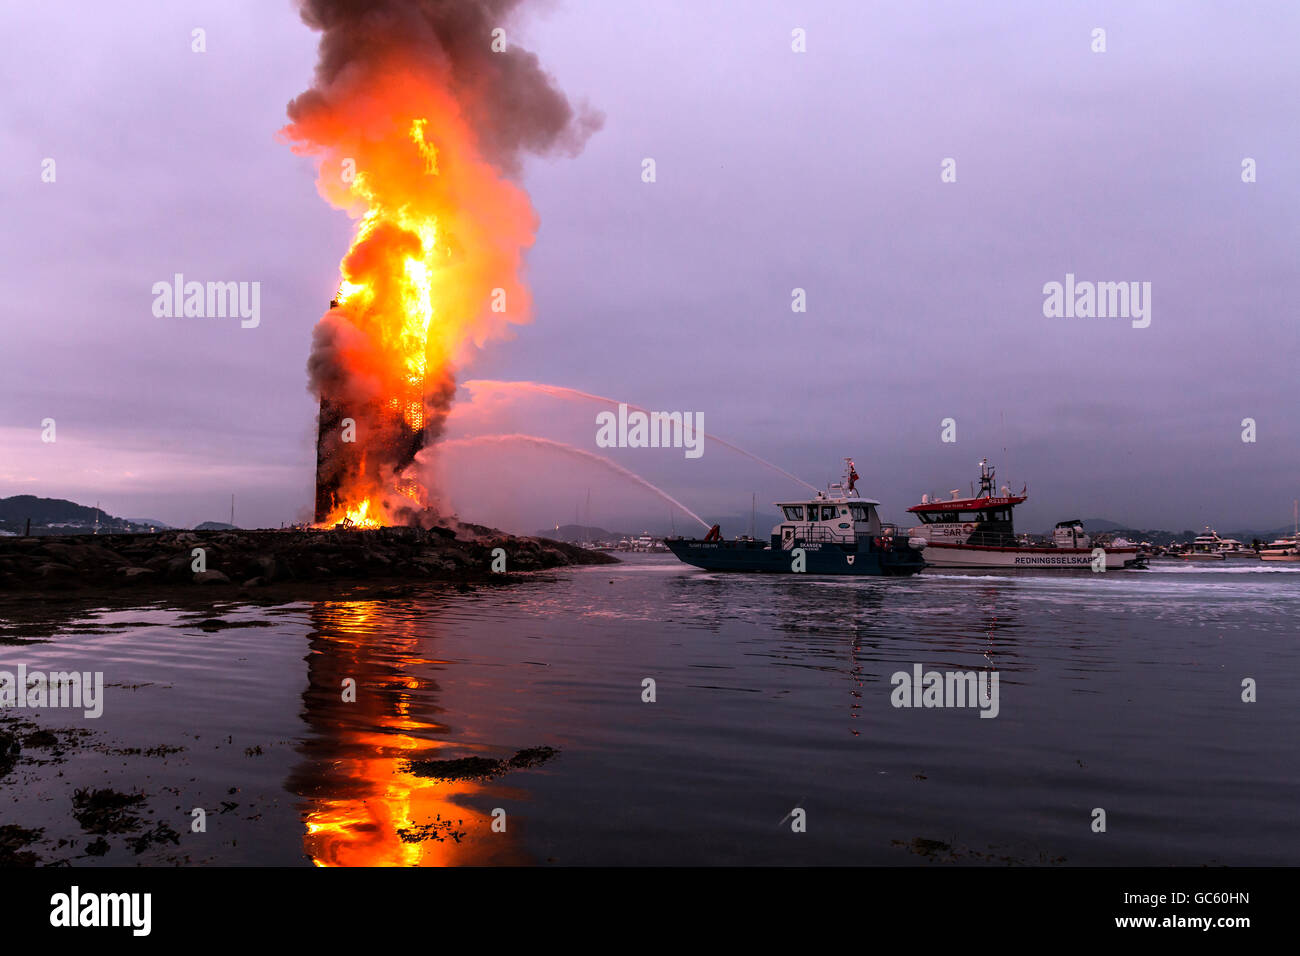 Rescue vessels safeguarding the burn down of 47,4 meter world record bonfire at Slinningen, Ålesund, Norway - Stock Image